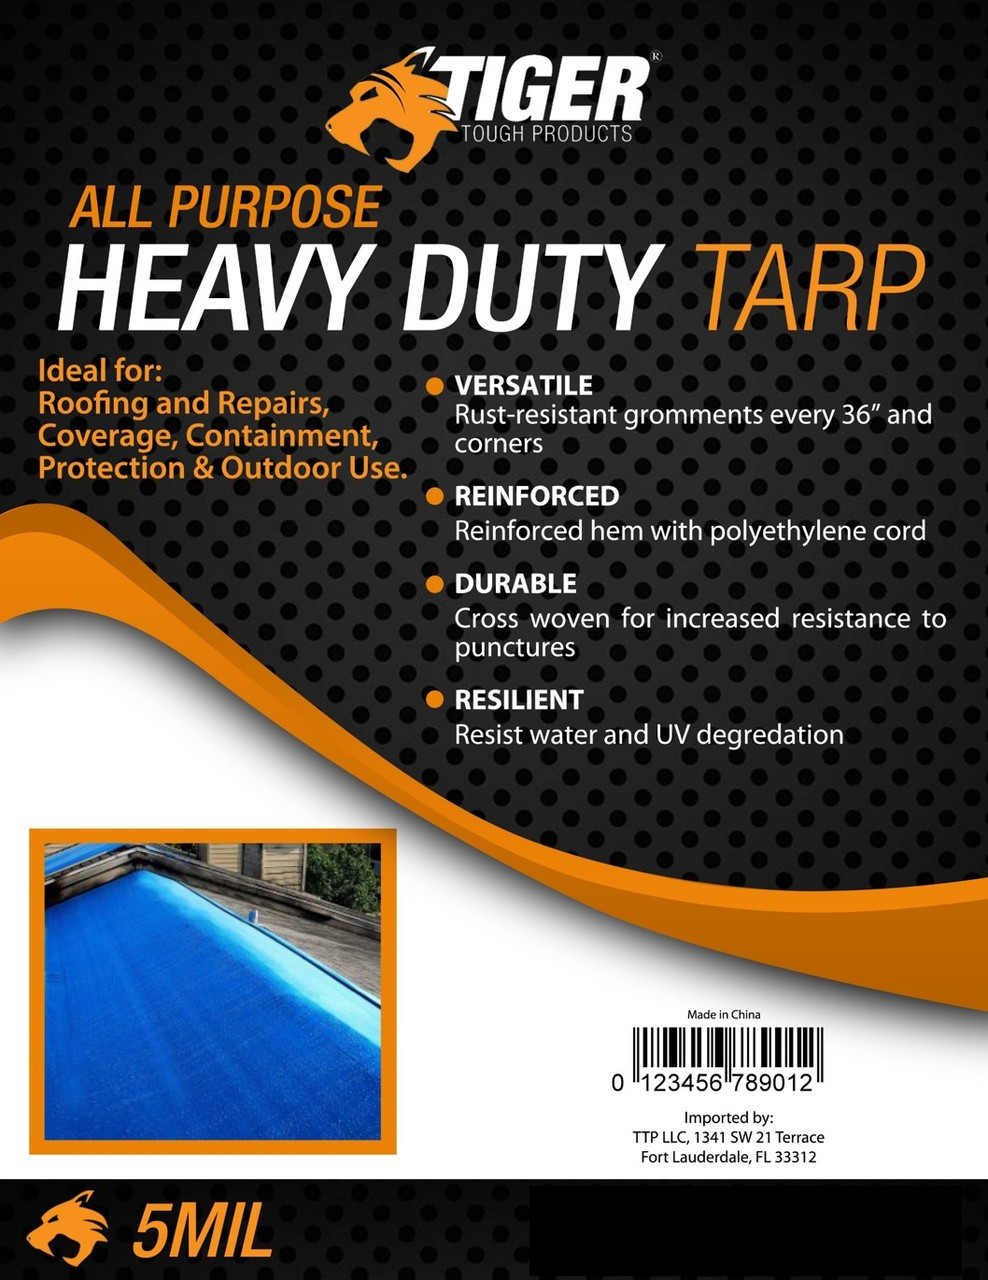 Tiger Tough Heavy Duty All-Purpose Tarp